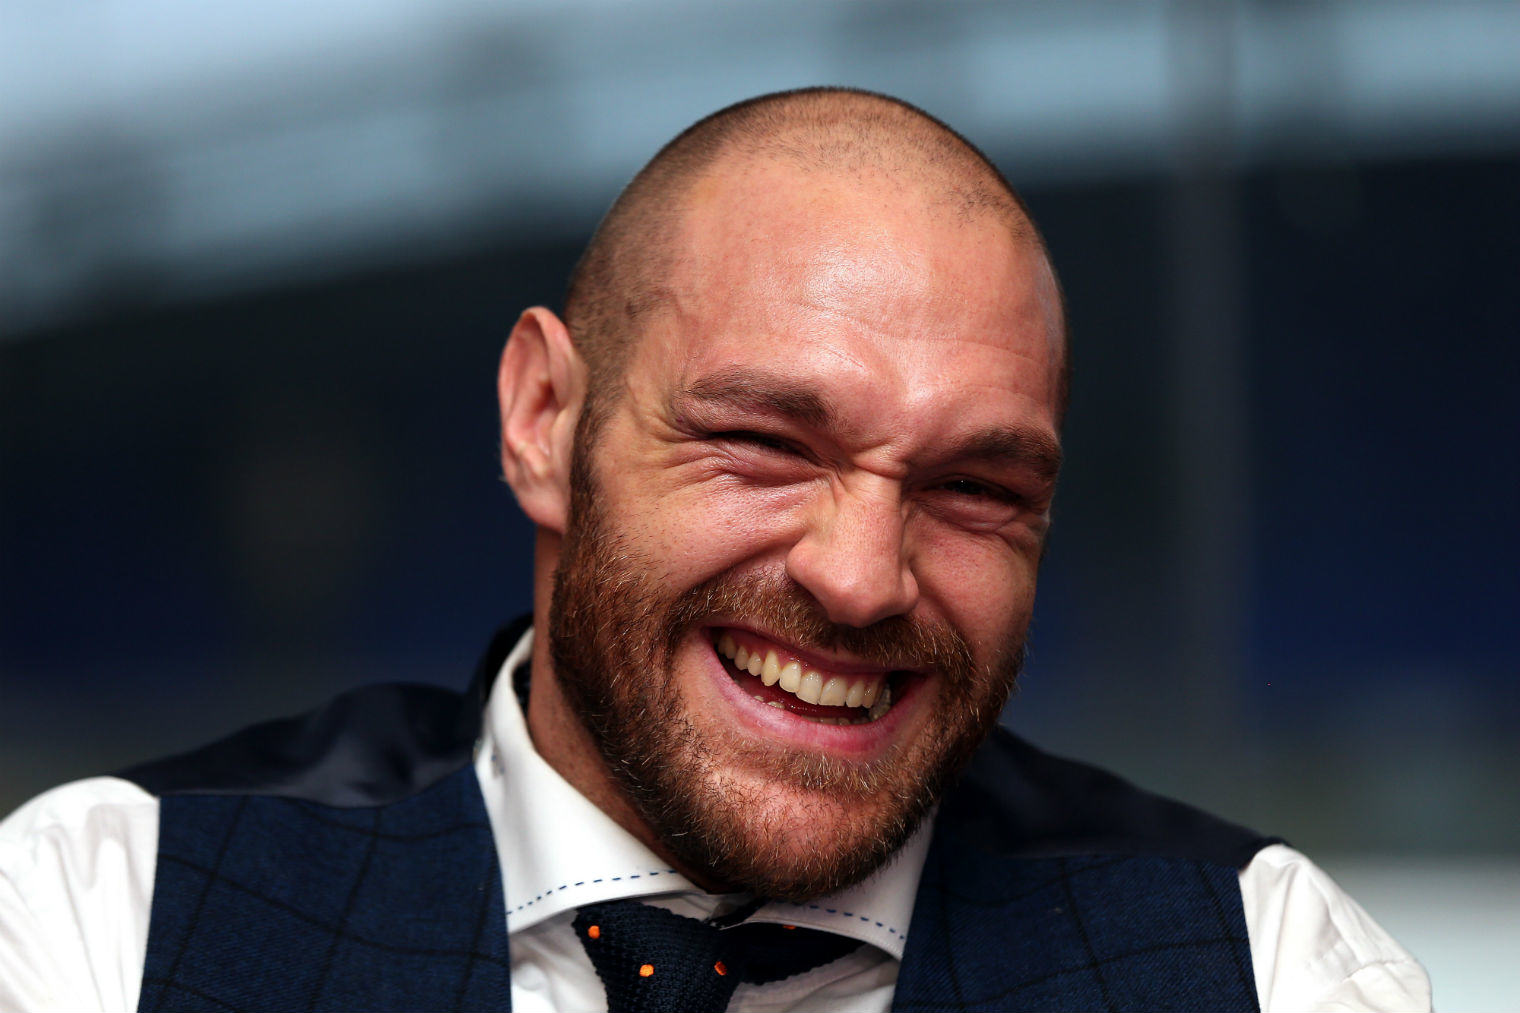 fury mp 1 An MP Has Challenged Tyson Fury To A Fight After Homosexuality Comments